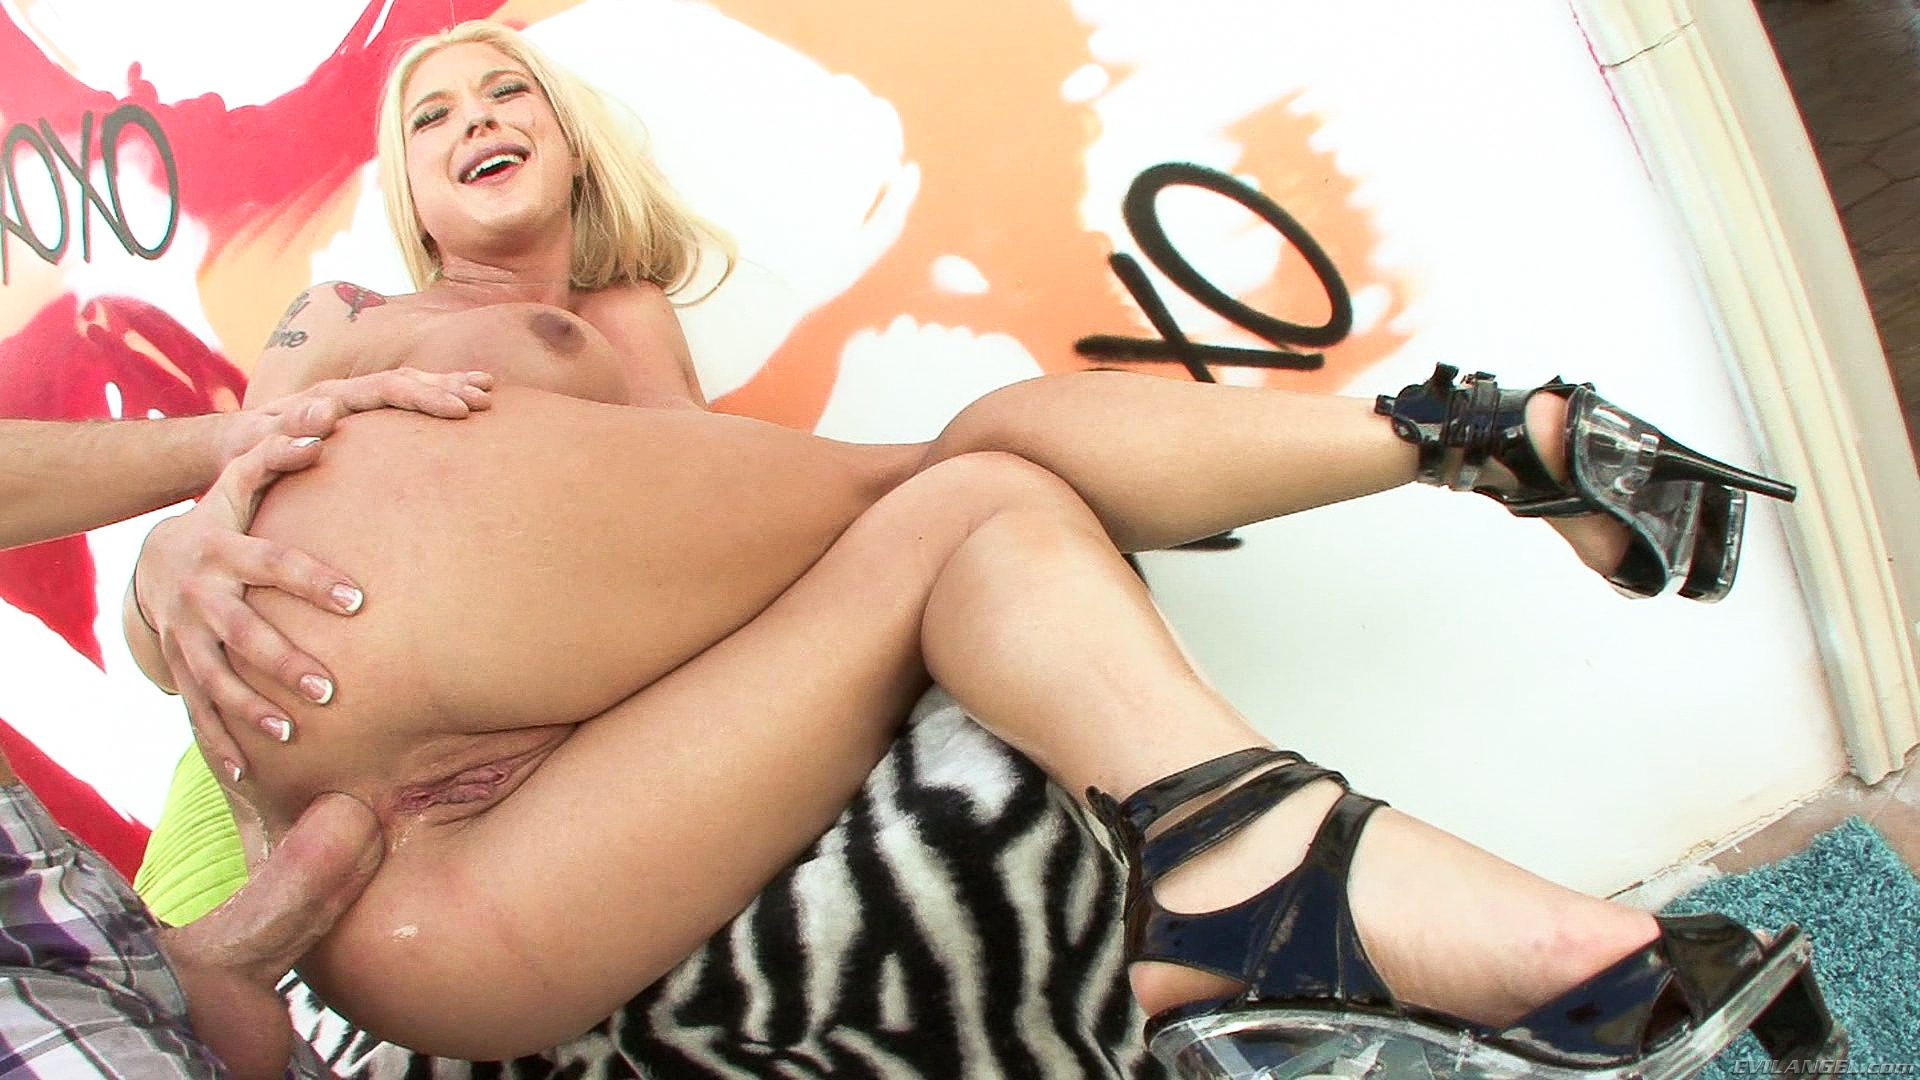 Anal Inferno #2 (2013) Anal Prolapse and Rosebutt